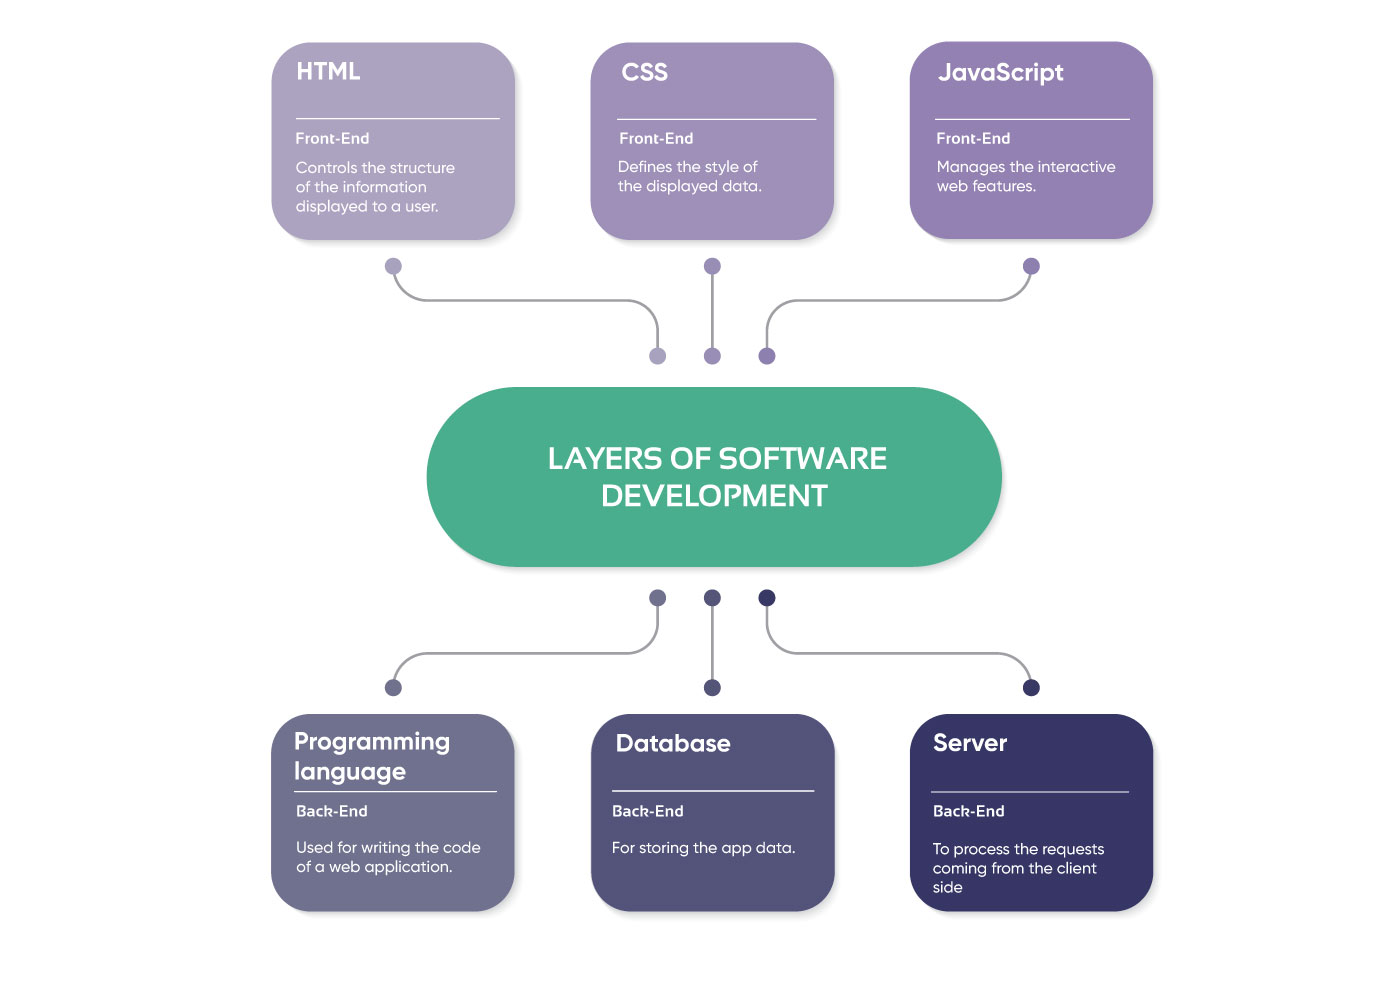 Technology Stack for Web Application Development in 2021